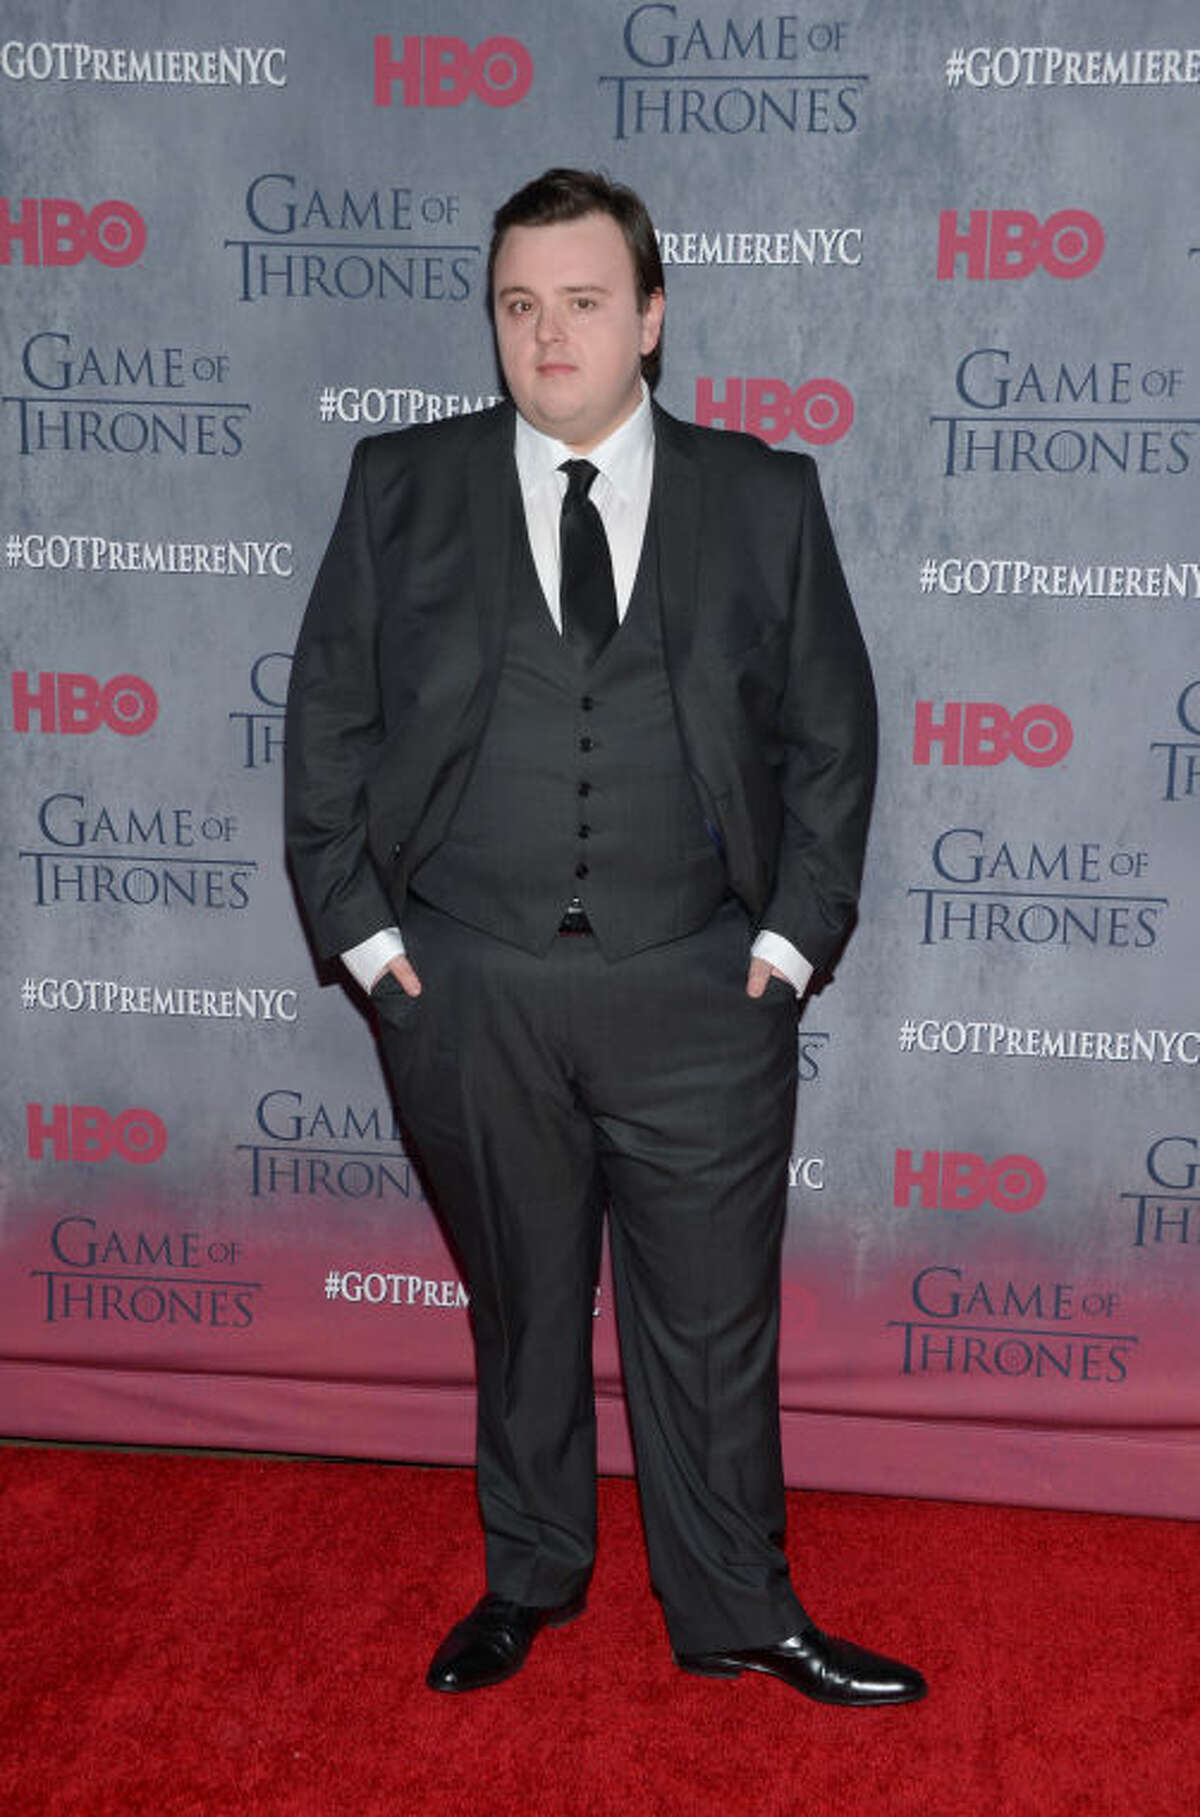 """Actor John Bradley attends HBO's """"Game of Thrones"""" fourth season premiere at Avery Fisher Hall on Tuesday, March 18, 2014 in New York. (Photo by Evan Agostini/Invision/AP)"""